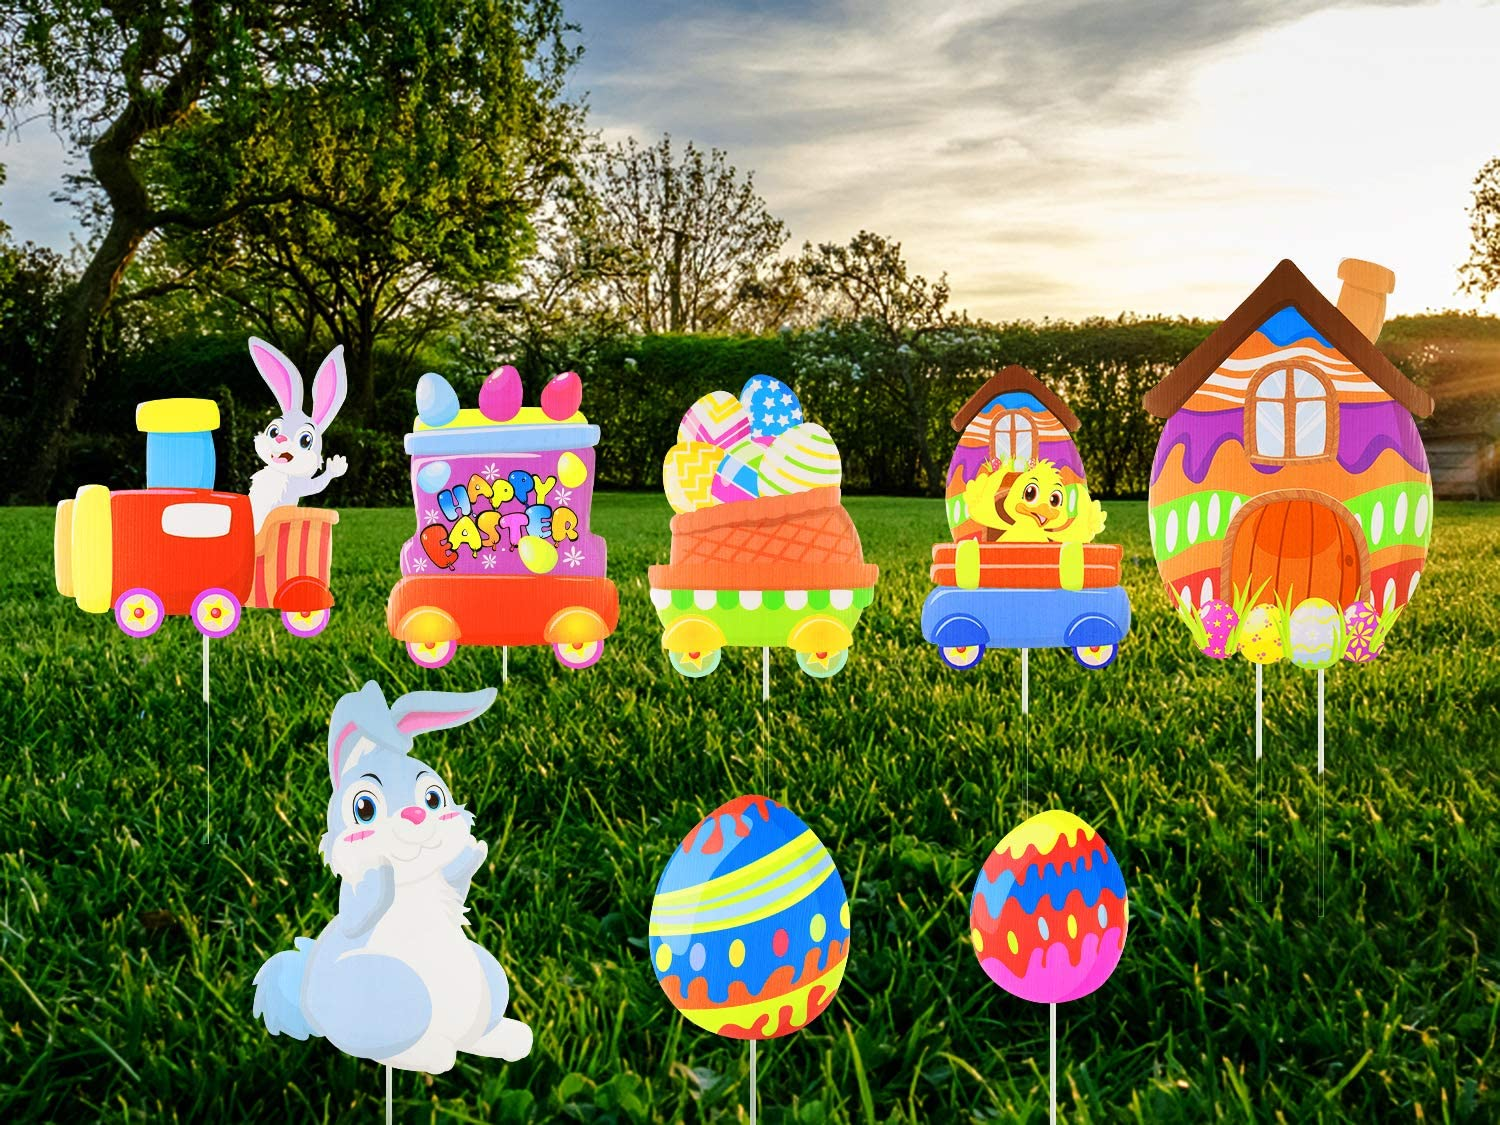 Unomor 12 Pack Easter Yard Signs Outdoor Lawn Decorations Large Easter  Decorations with Easter Eggs, Bunny and Chick for Easter Party Supplies  Eater